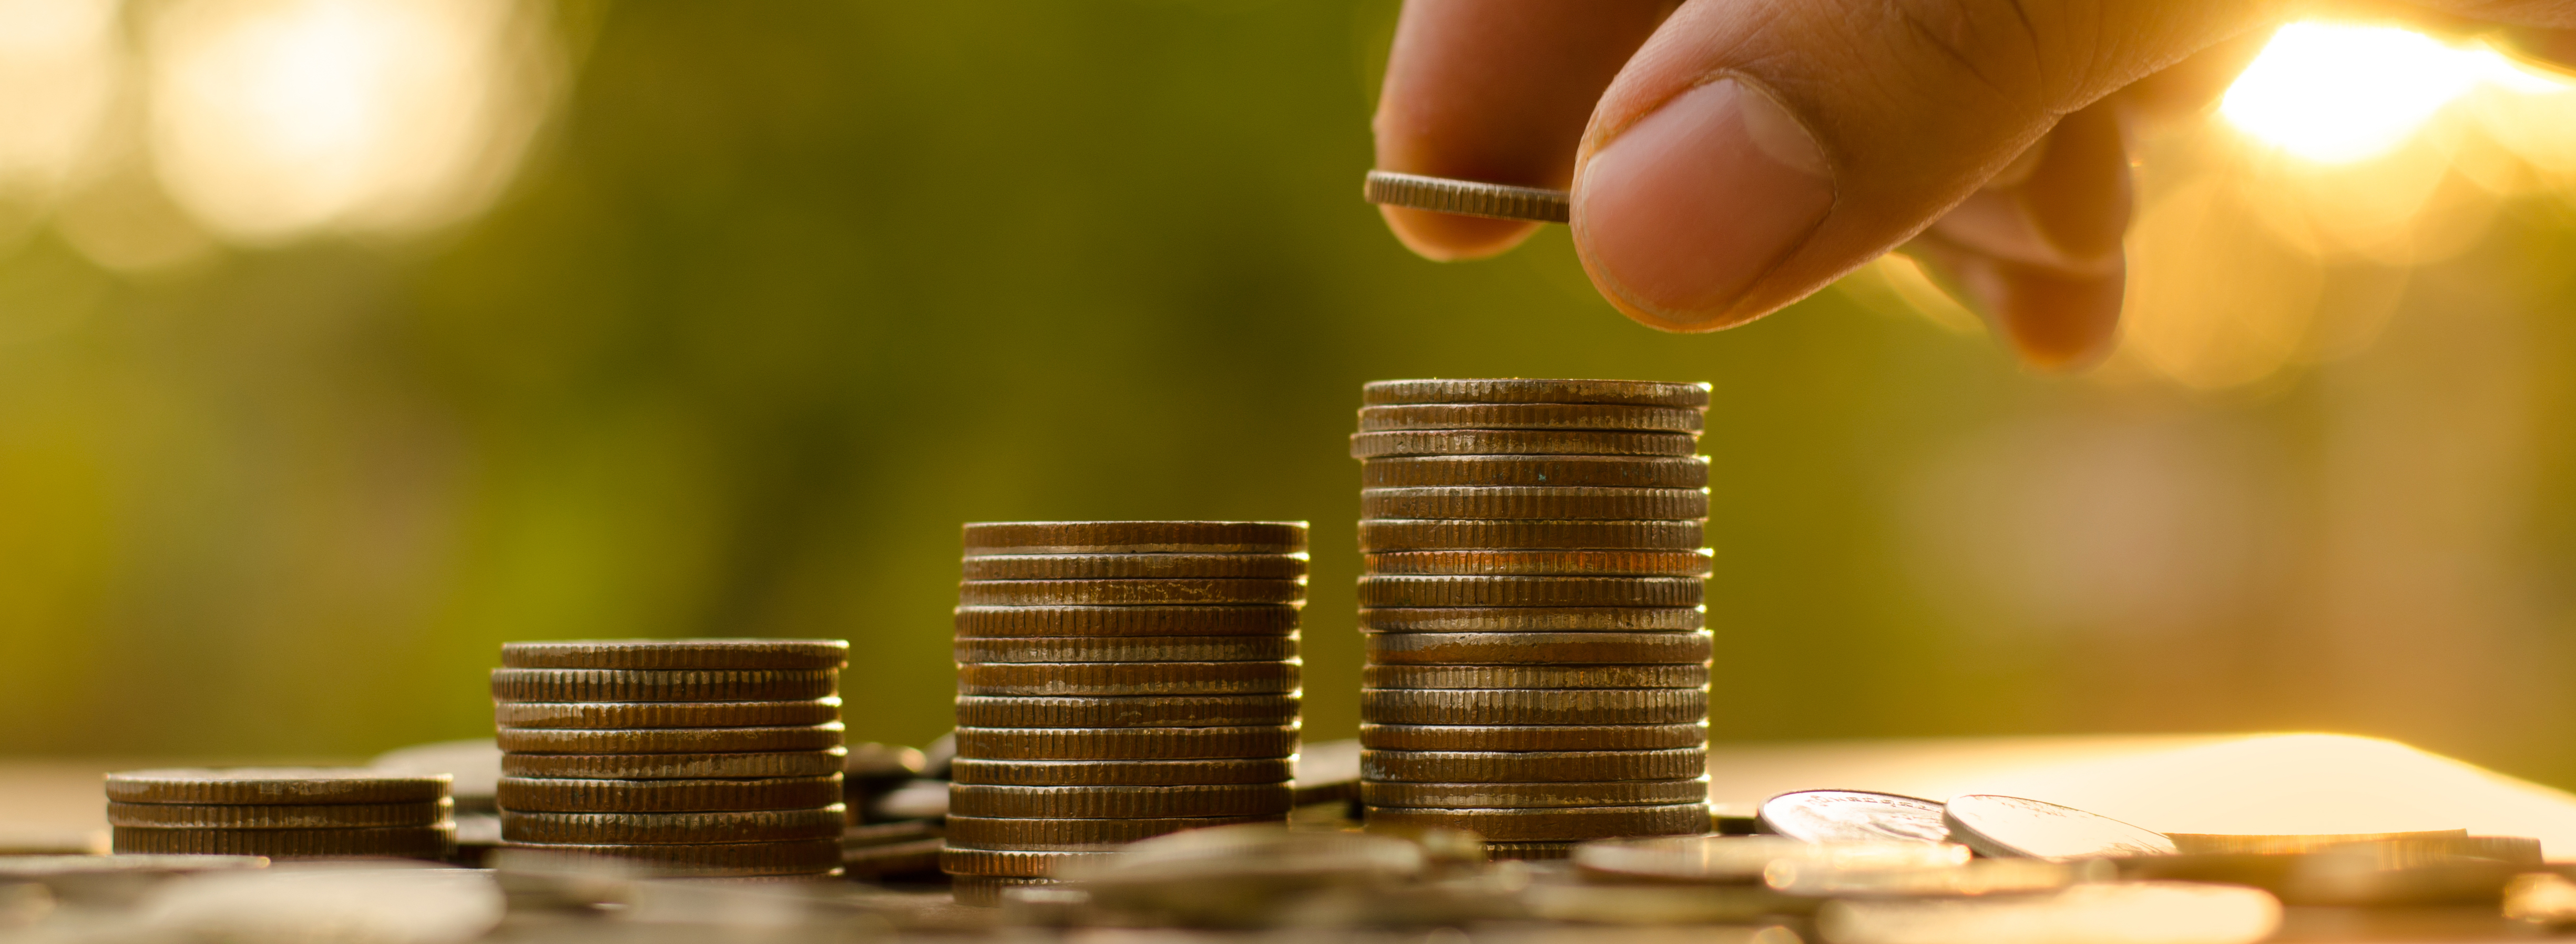 Stacking Coins for ACU Savings Account